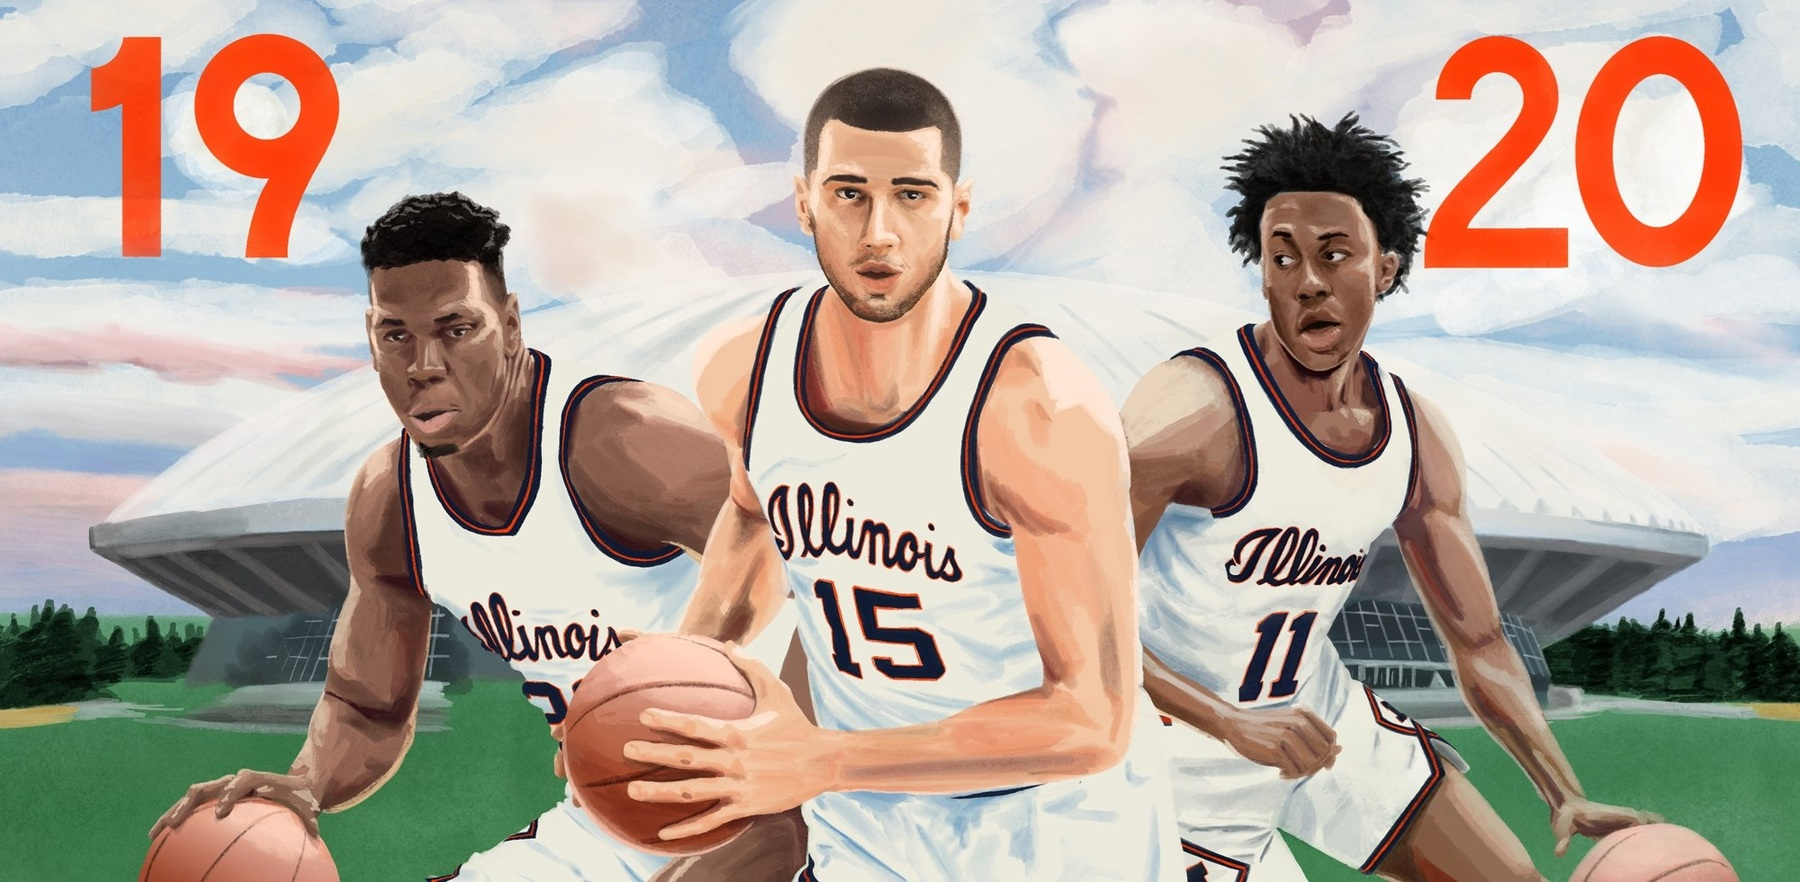 water-color-look graphic shows players wearing classic 70s era uniforms